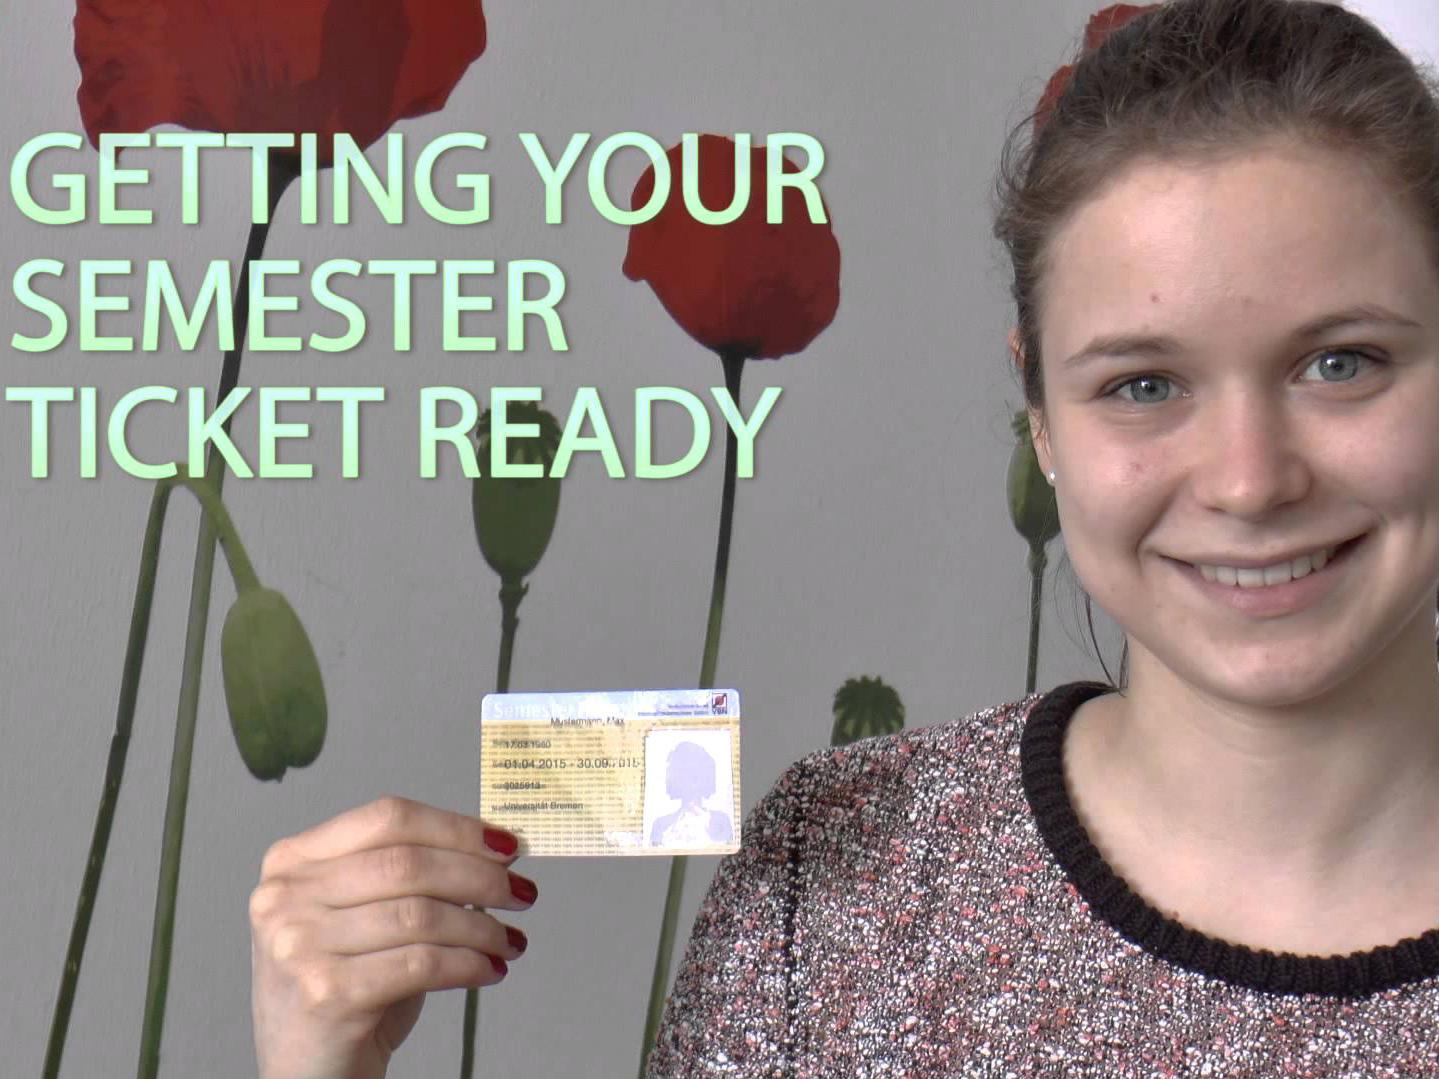 [Translate to English:] Studentin zeigt Semesterticket